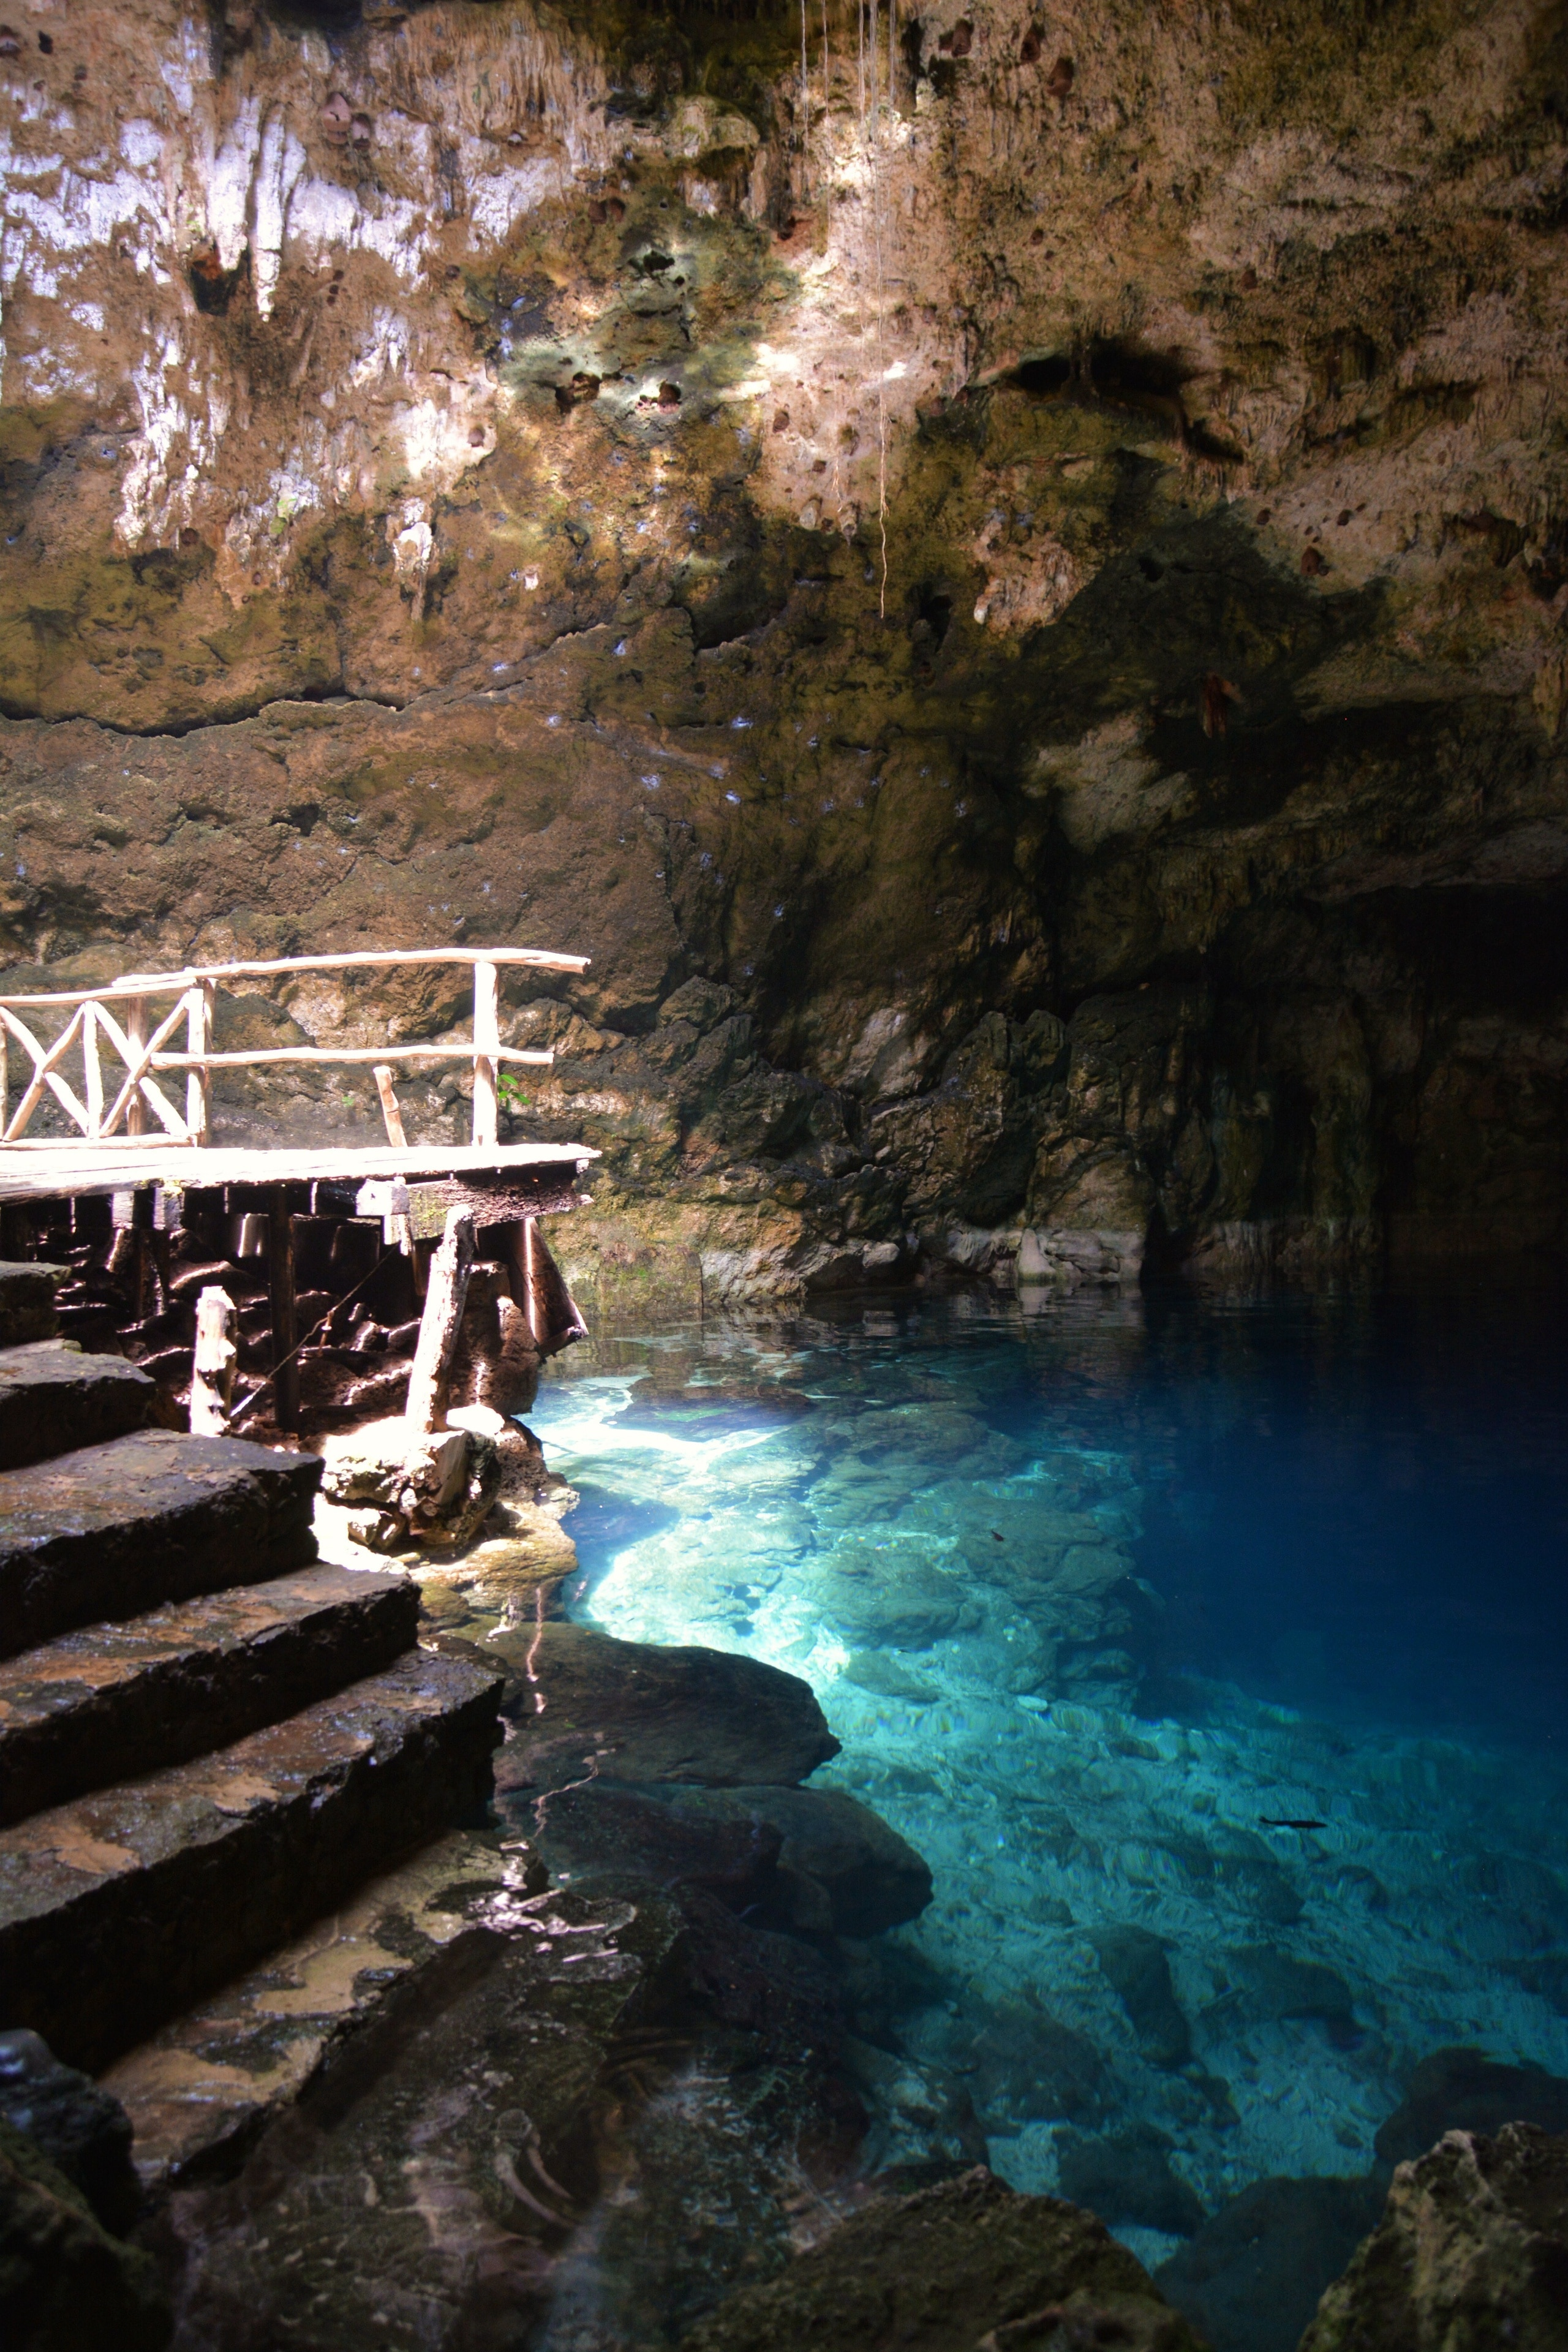 Commune with nature and explore the great outdoors at Cenotes Cuzama during your travels in Cuzama. While you're in the area, wander around the natural setting.